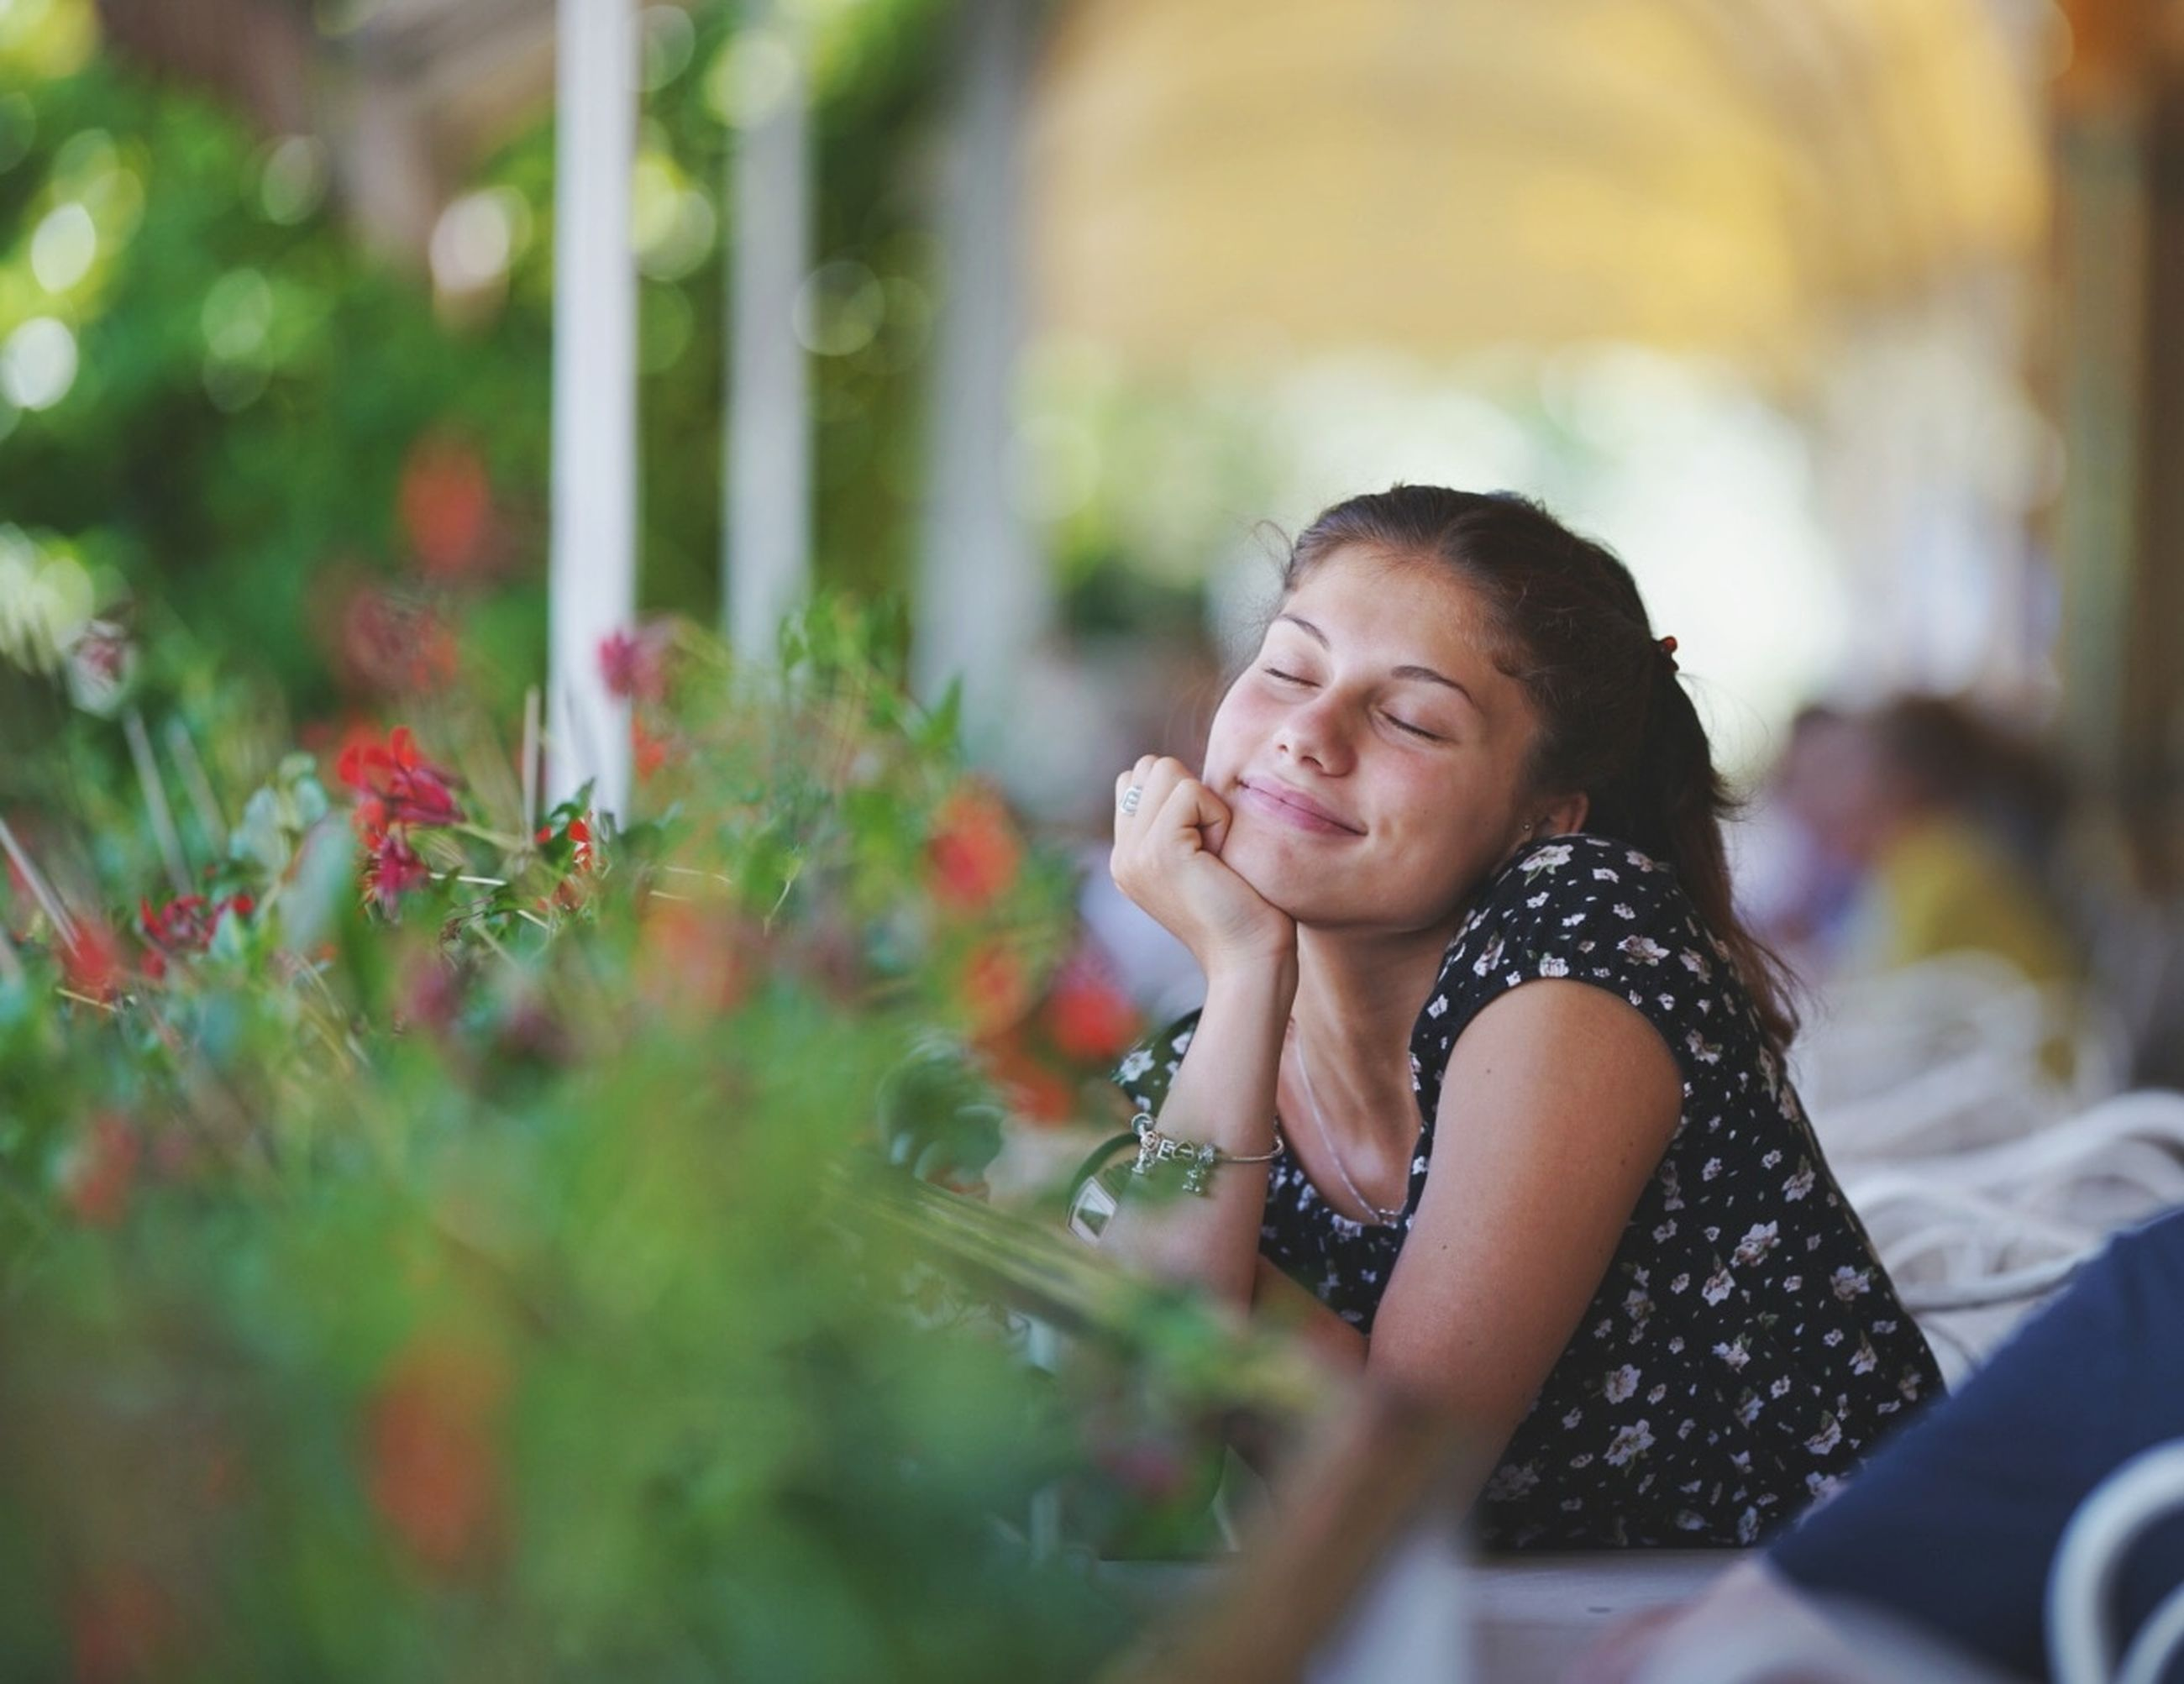 child, one person, childhood, girls, selective focus, real people, leisure activity, smiling, lifestyles, women, casual clothing, happiness, portrait, plant, females, flower, sitting, day, innocence, outdoors, hairstyle